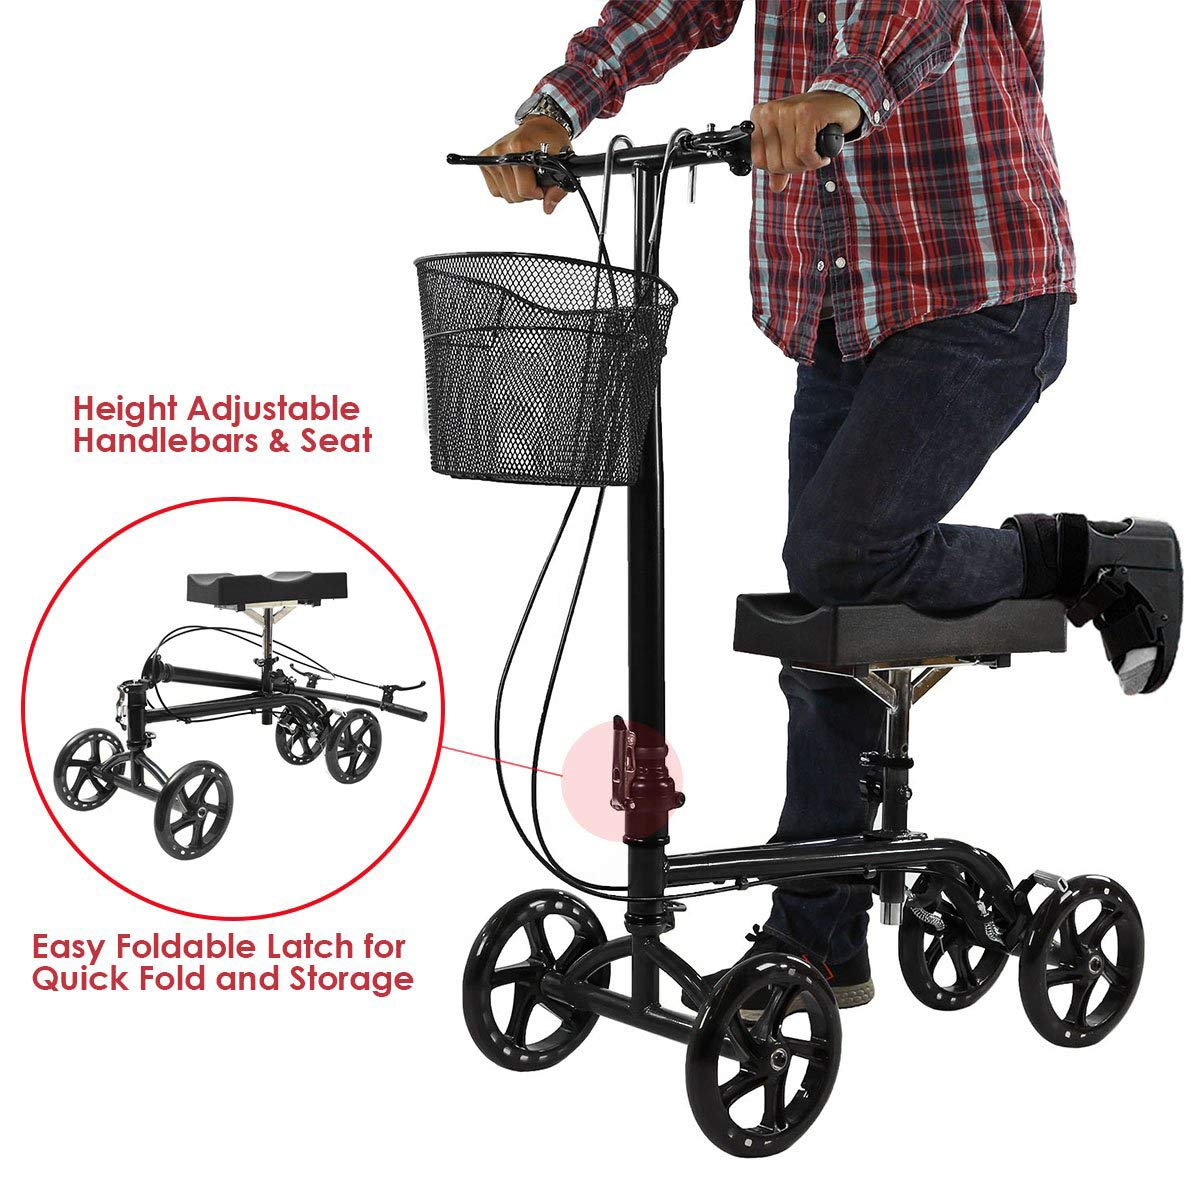 Clevr Foldable Knee Walker Scooter for Foot Injuries or Surgery, Adjustable with Dual Brake System & Basket, Medical Steerable Crutch Alternative, Black by Clevr